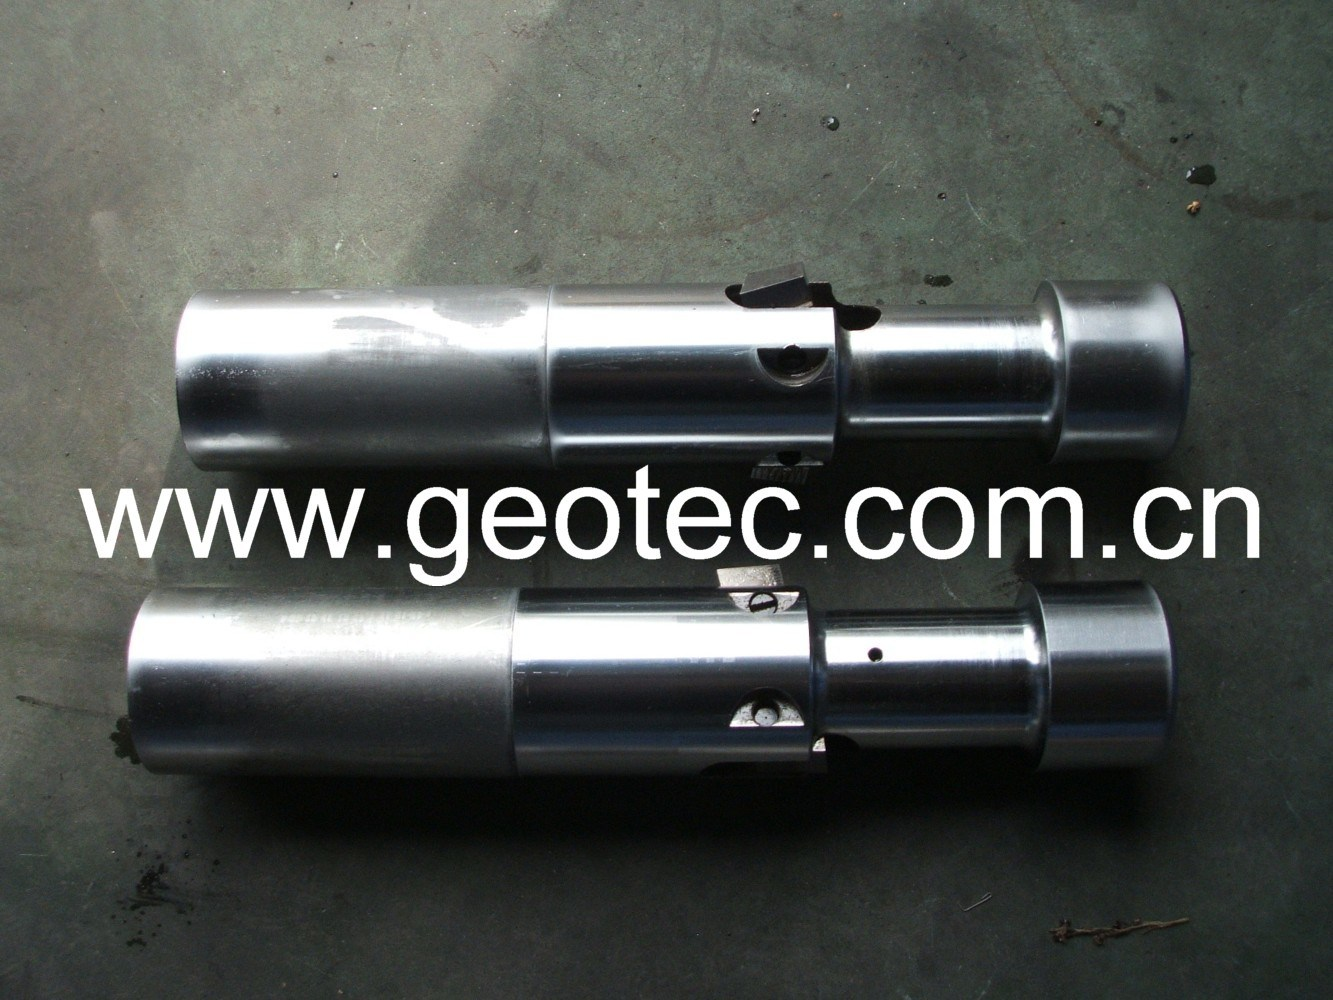 Aw, Bw Nw Hw/Hwt Core Drilling Casing Cutter